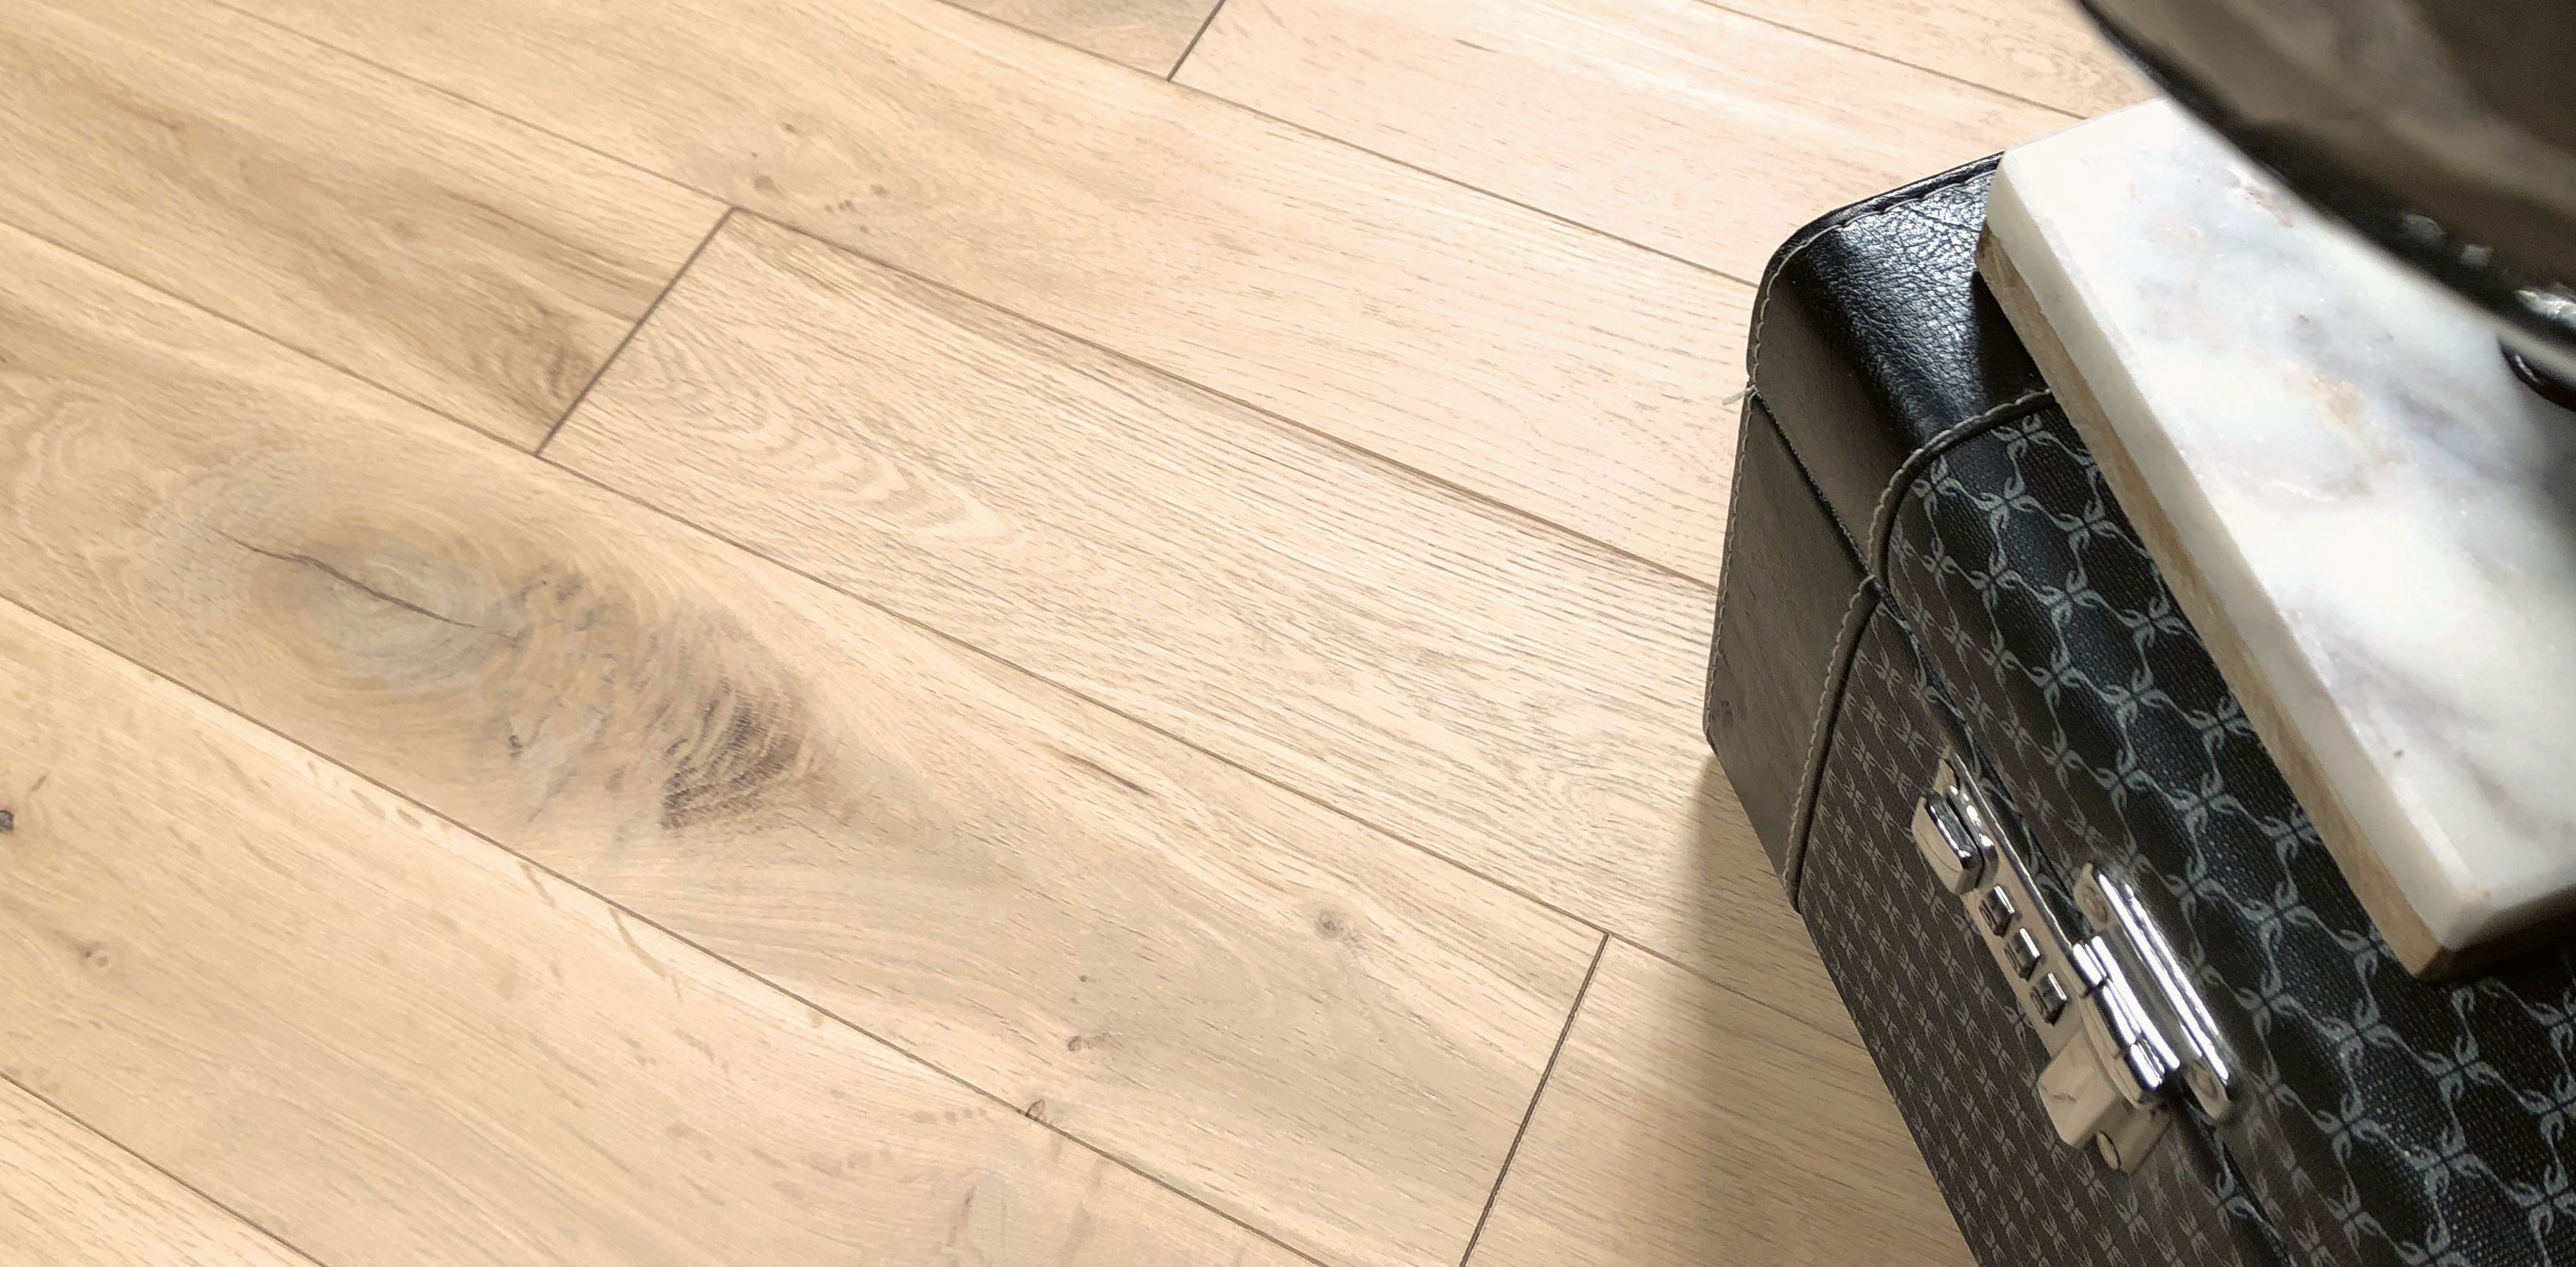 dune-hardwood-flooring-with-suitcase-and-globe